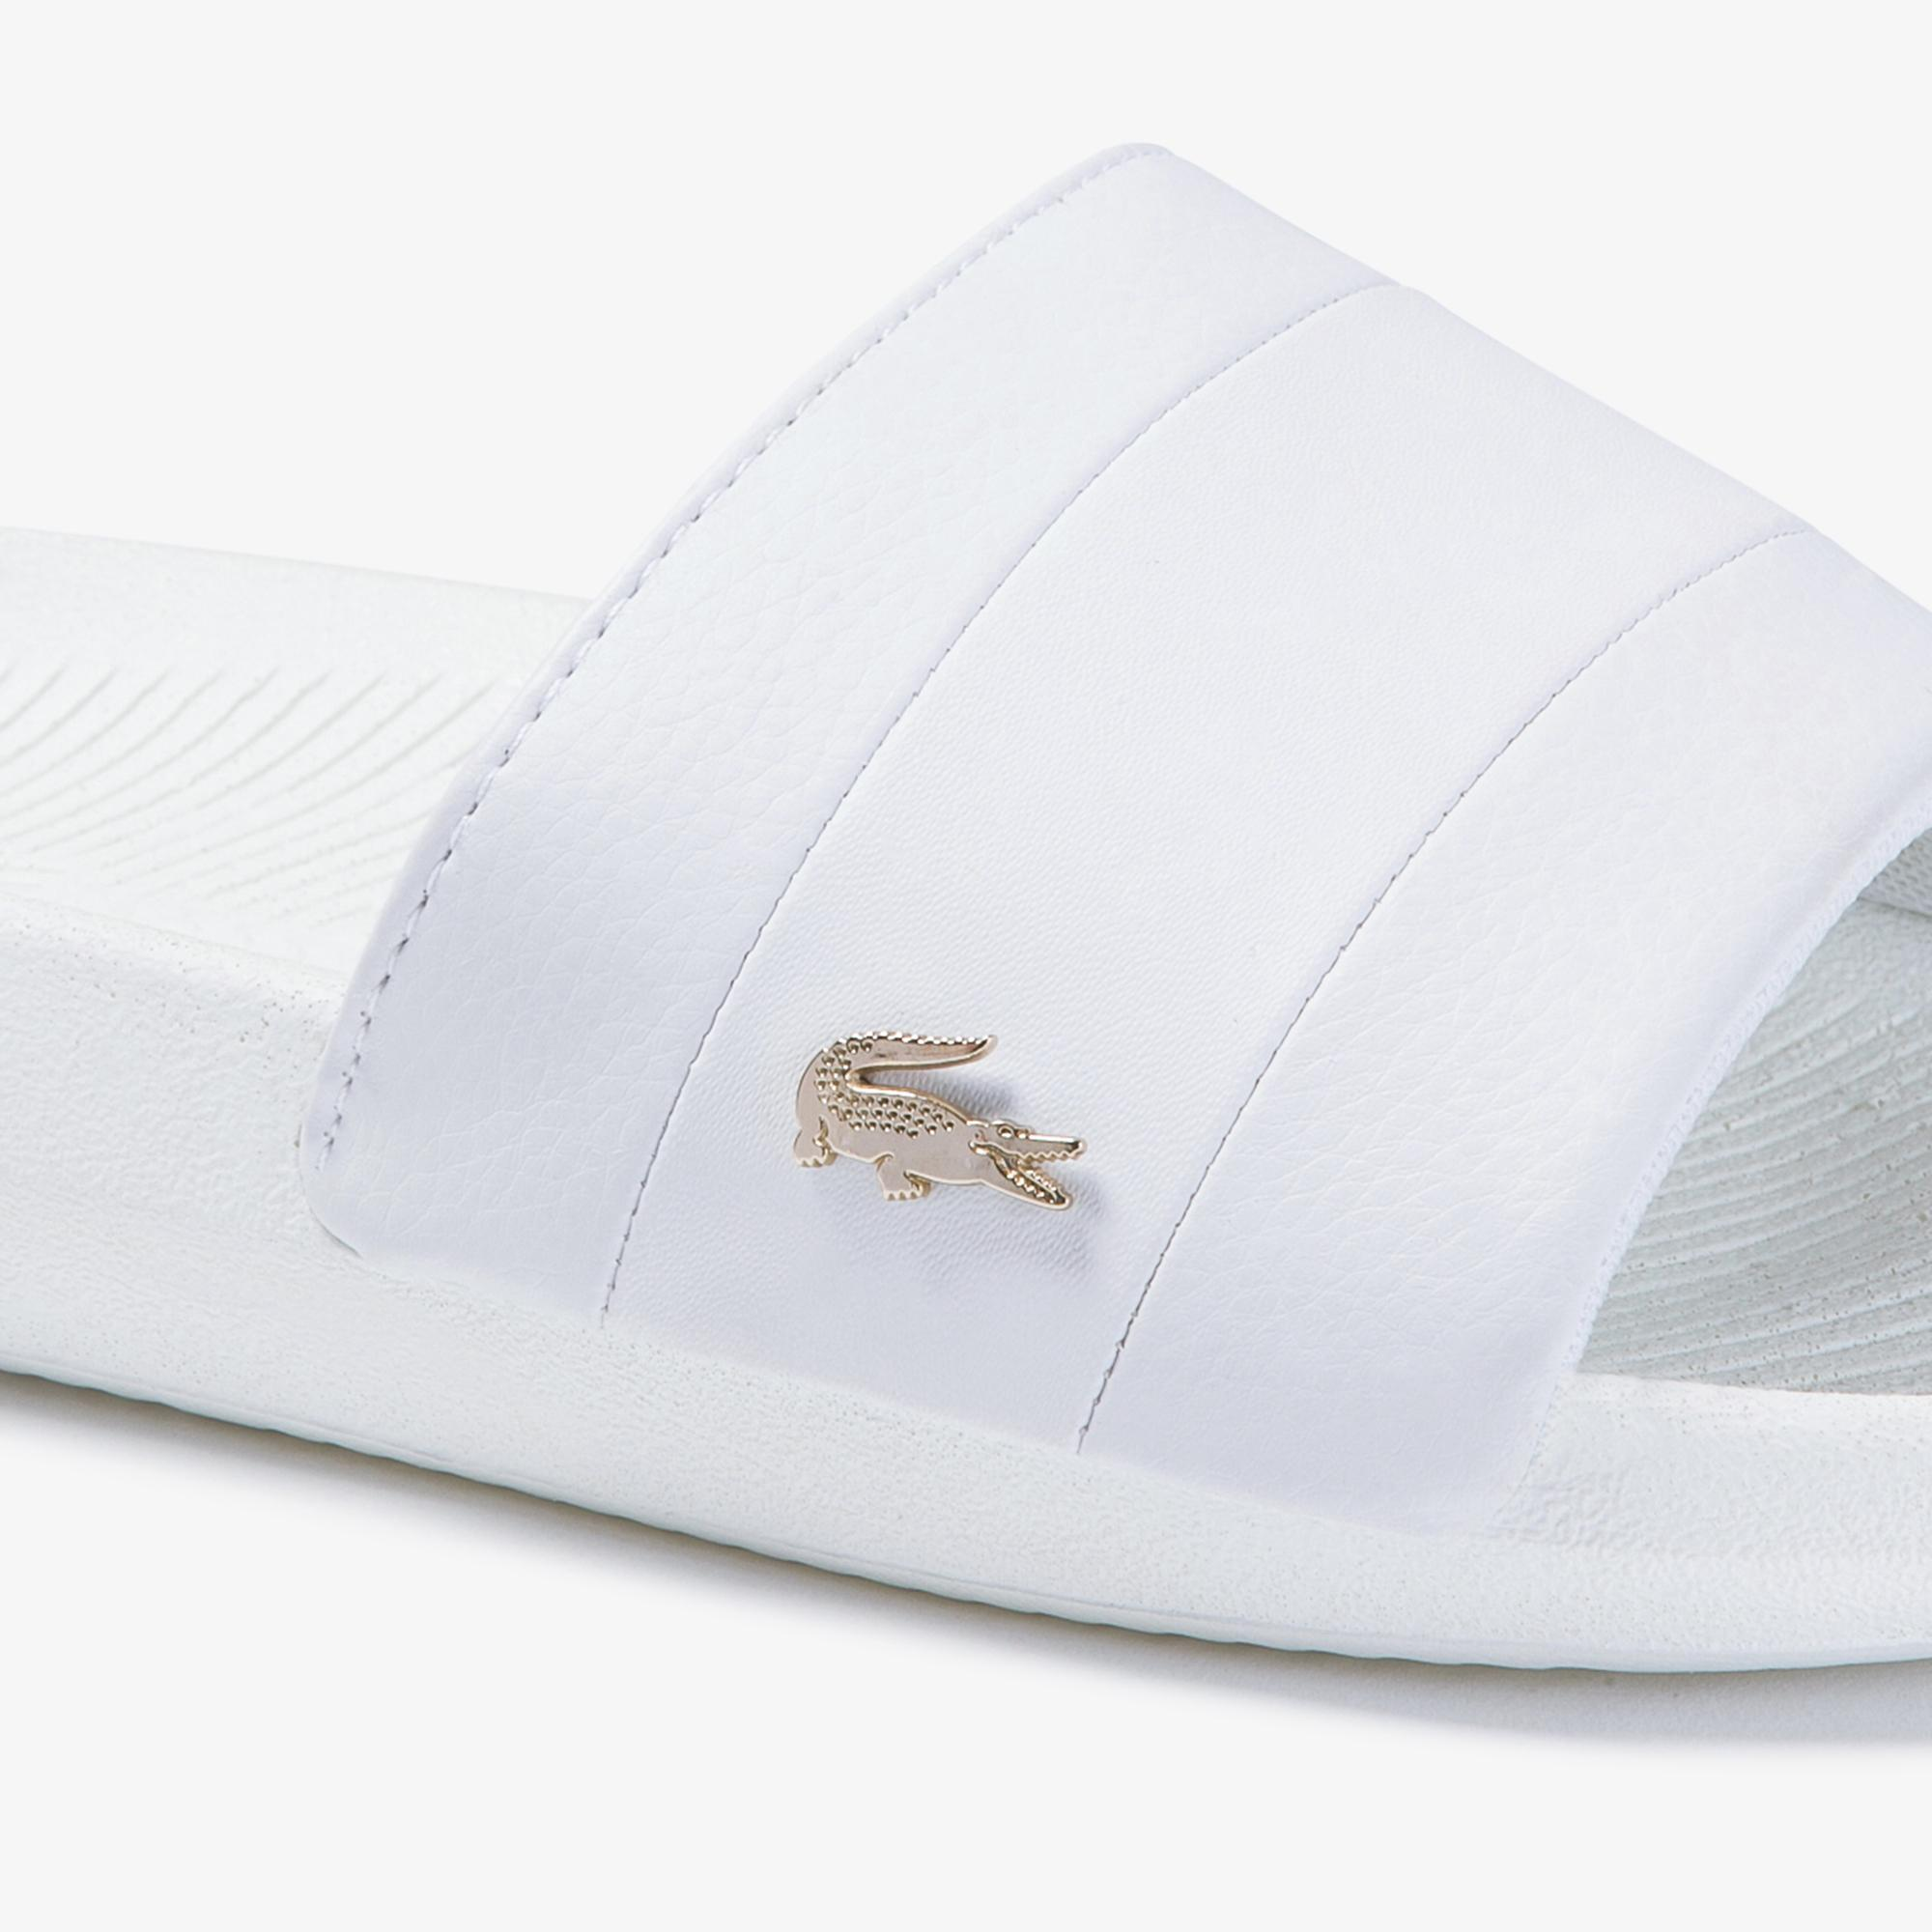 Lacoste Croco Slide 120 3 Us Women's Slippers